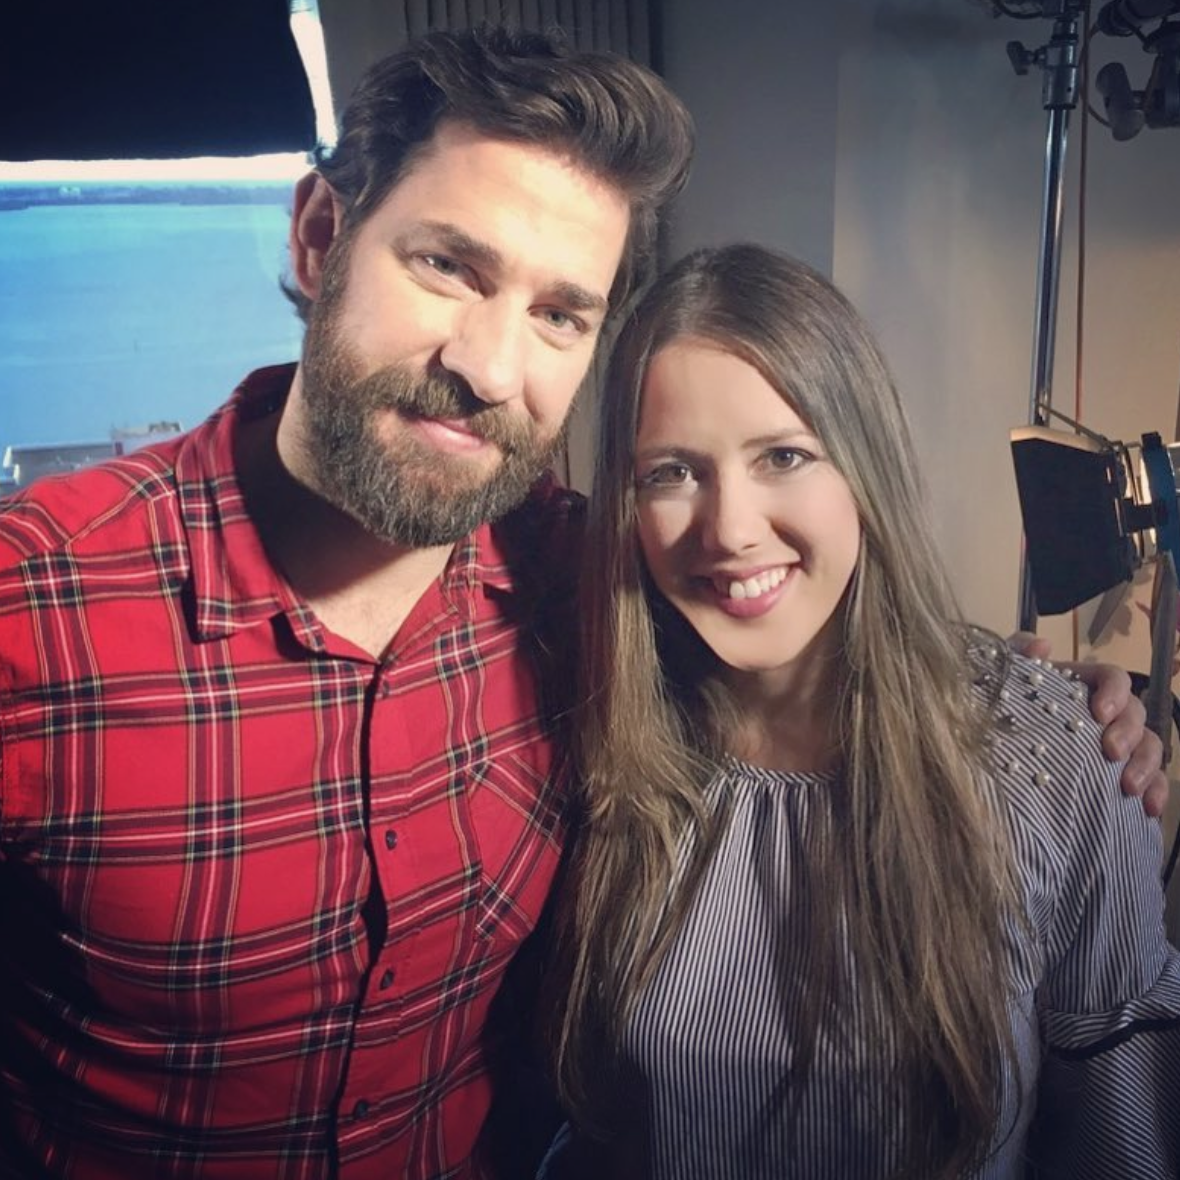 A Quiet Place with John Krasinski